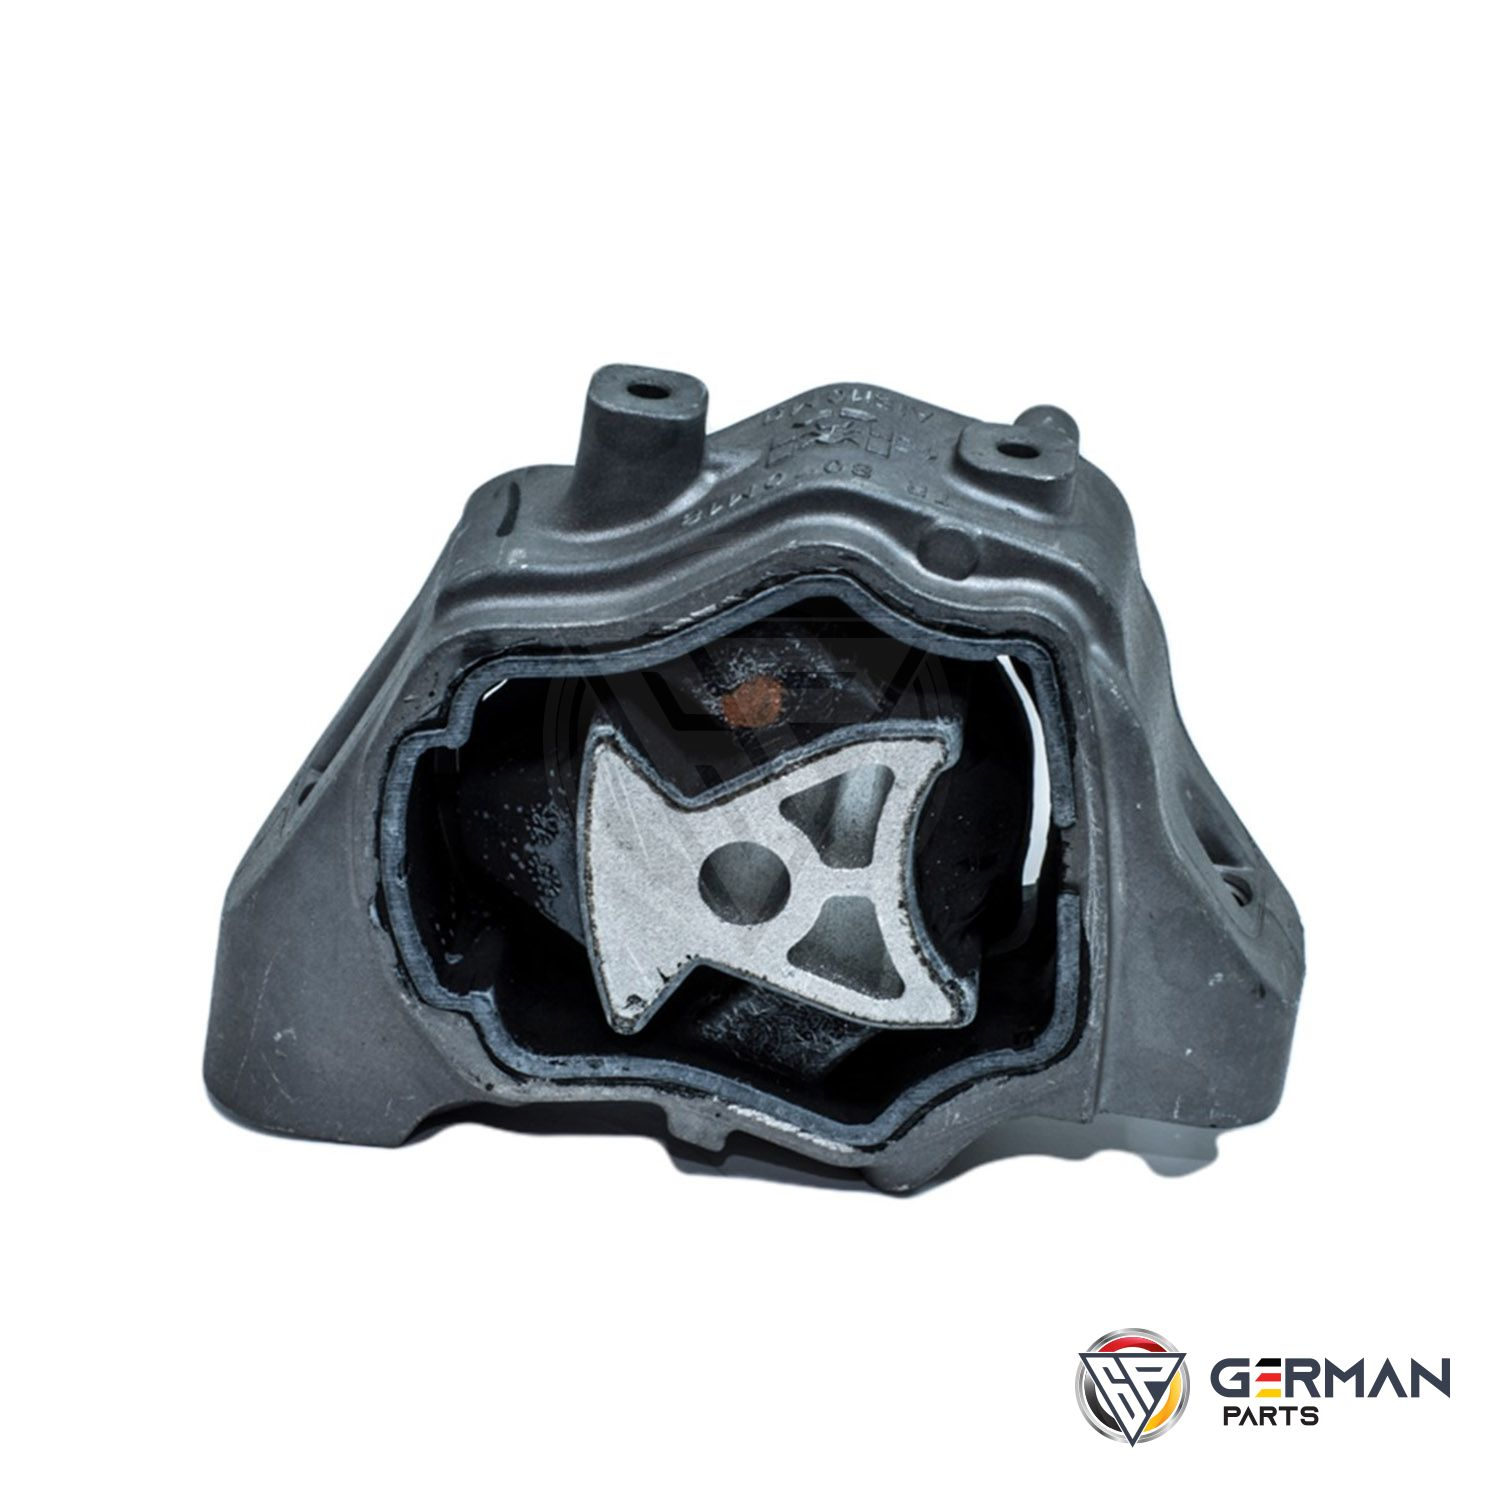 Buy Genuine Land Rover Engine Mounting LR011835 - German Parts